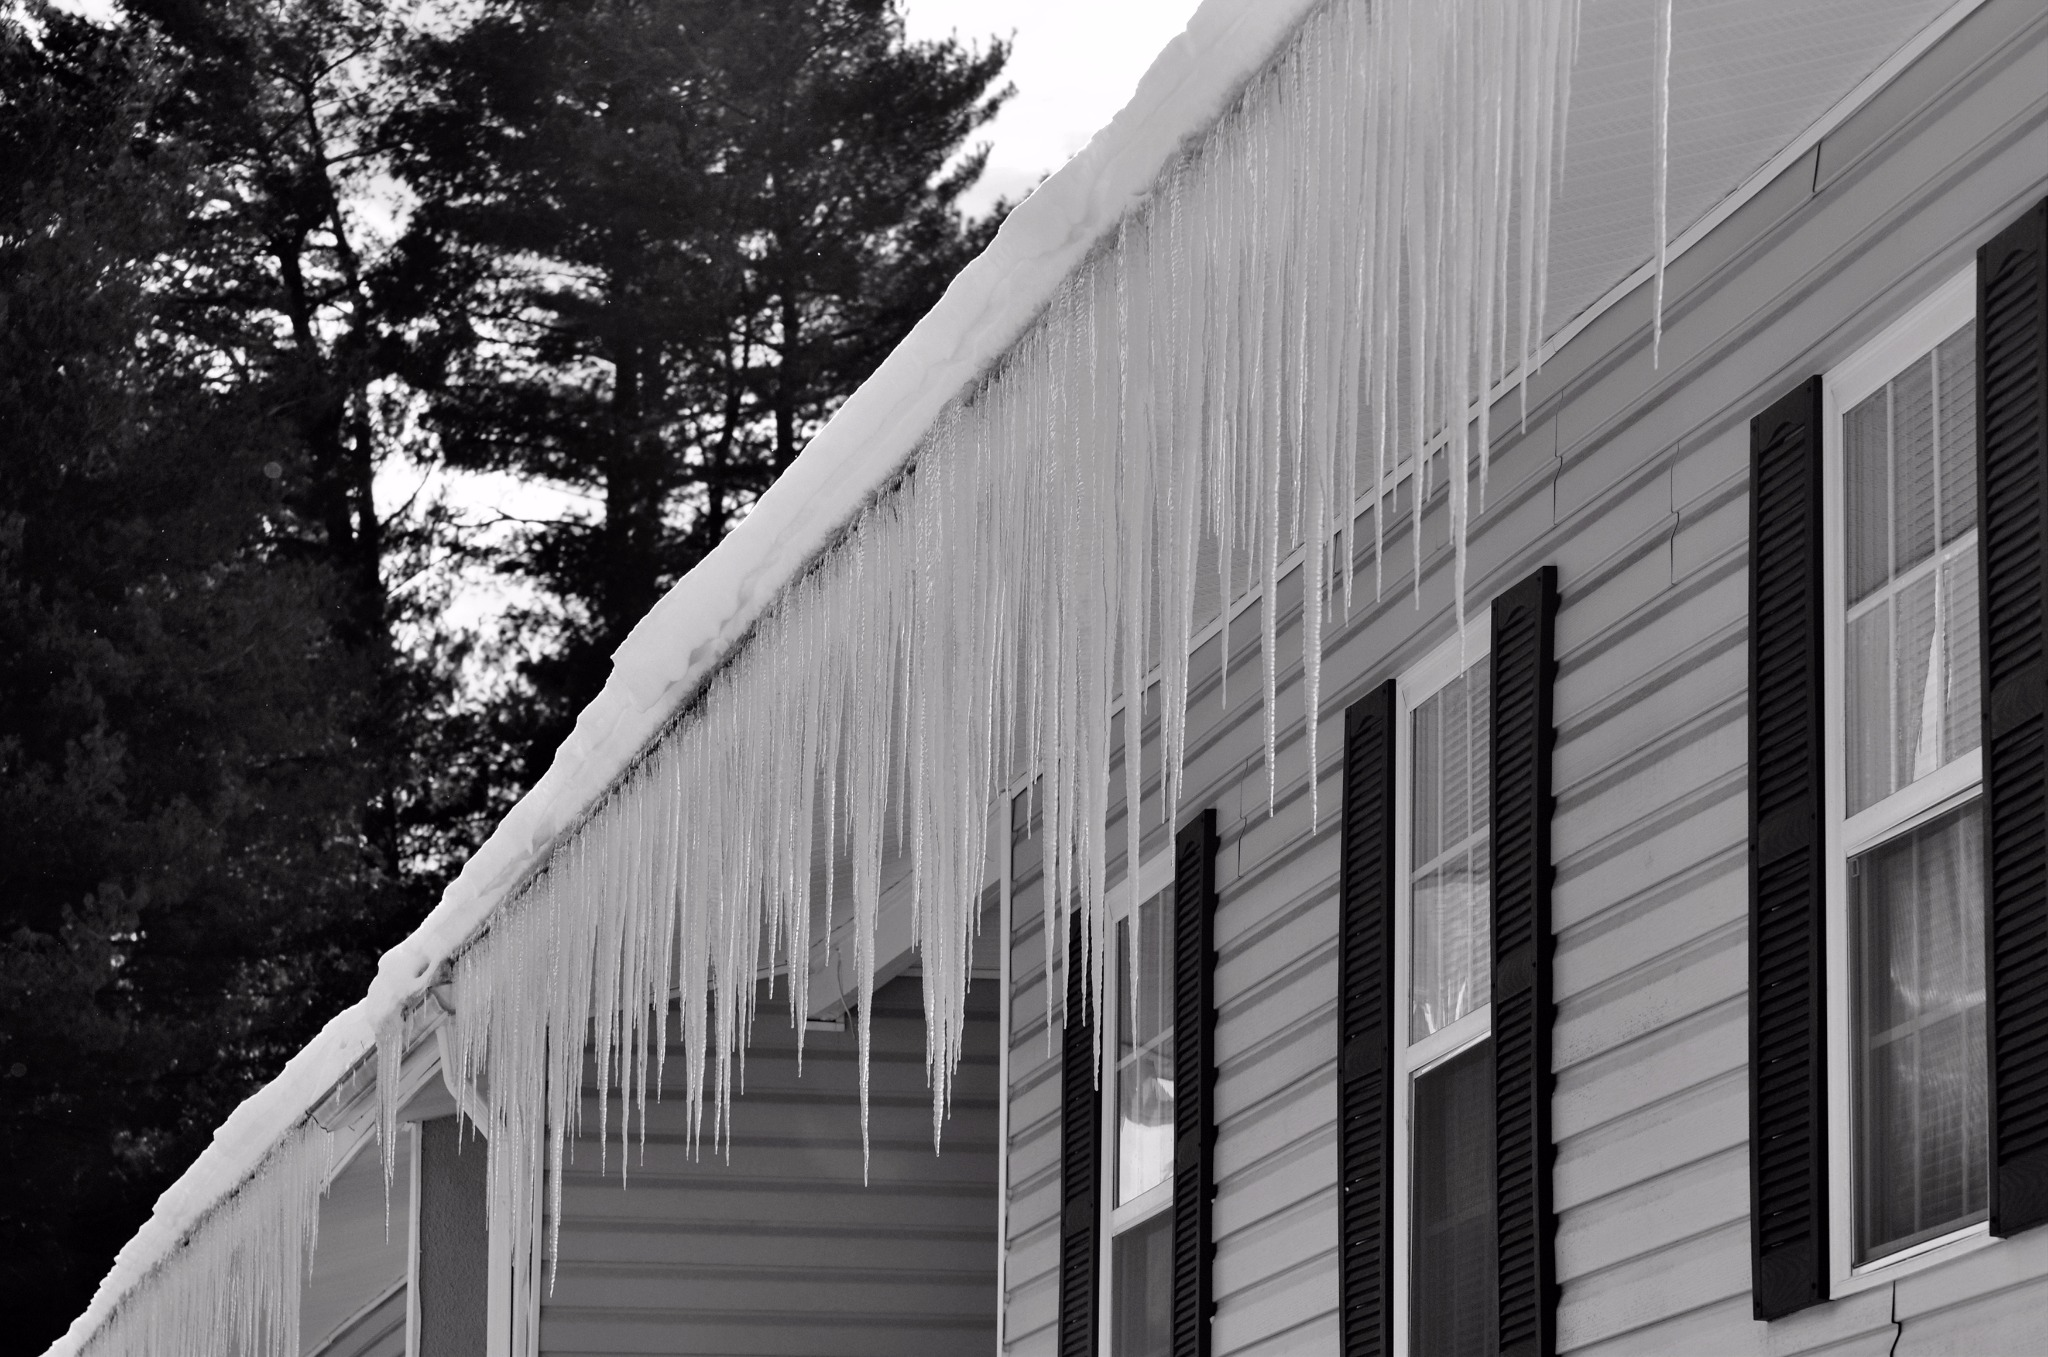 Don't to the experts at Evergreen Home Performance about preventing ice dam damage to your Maine home.